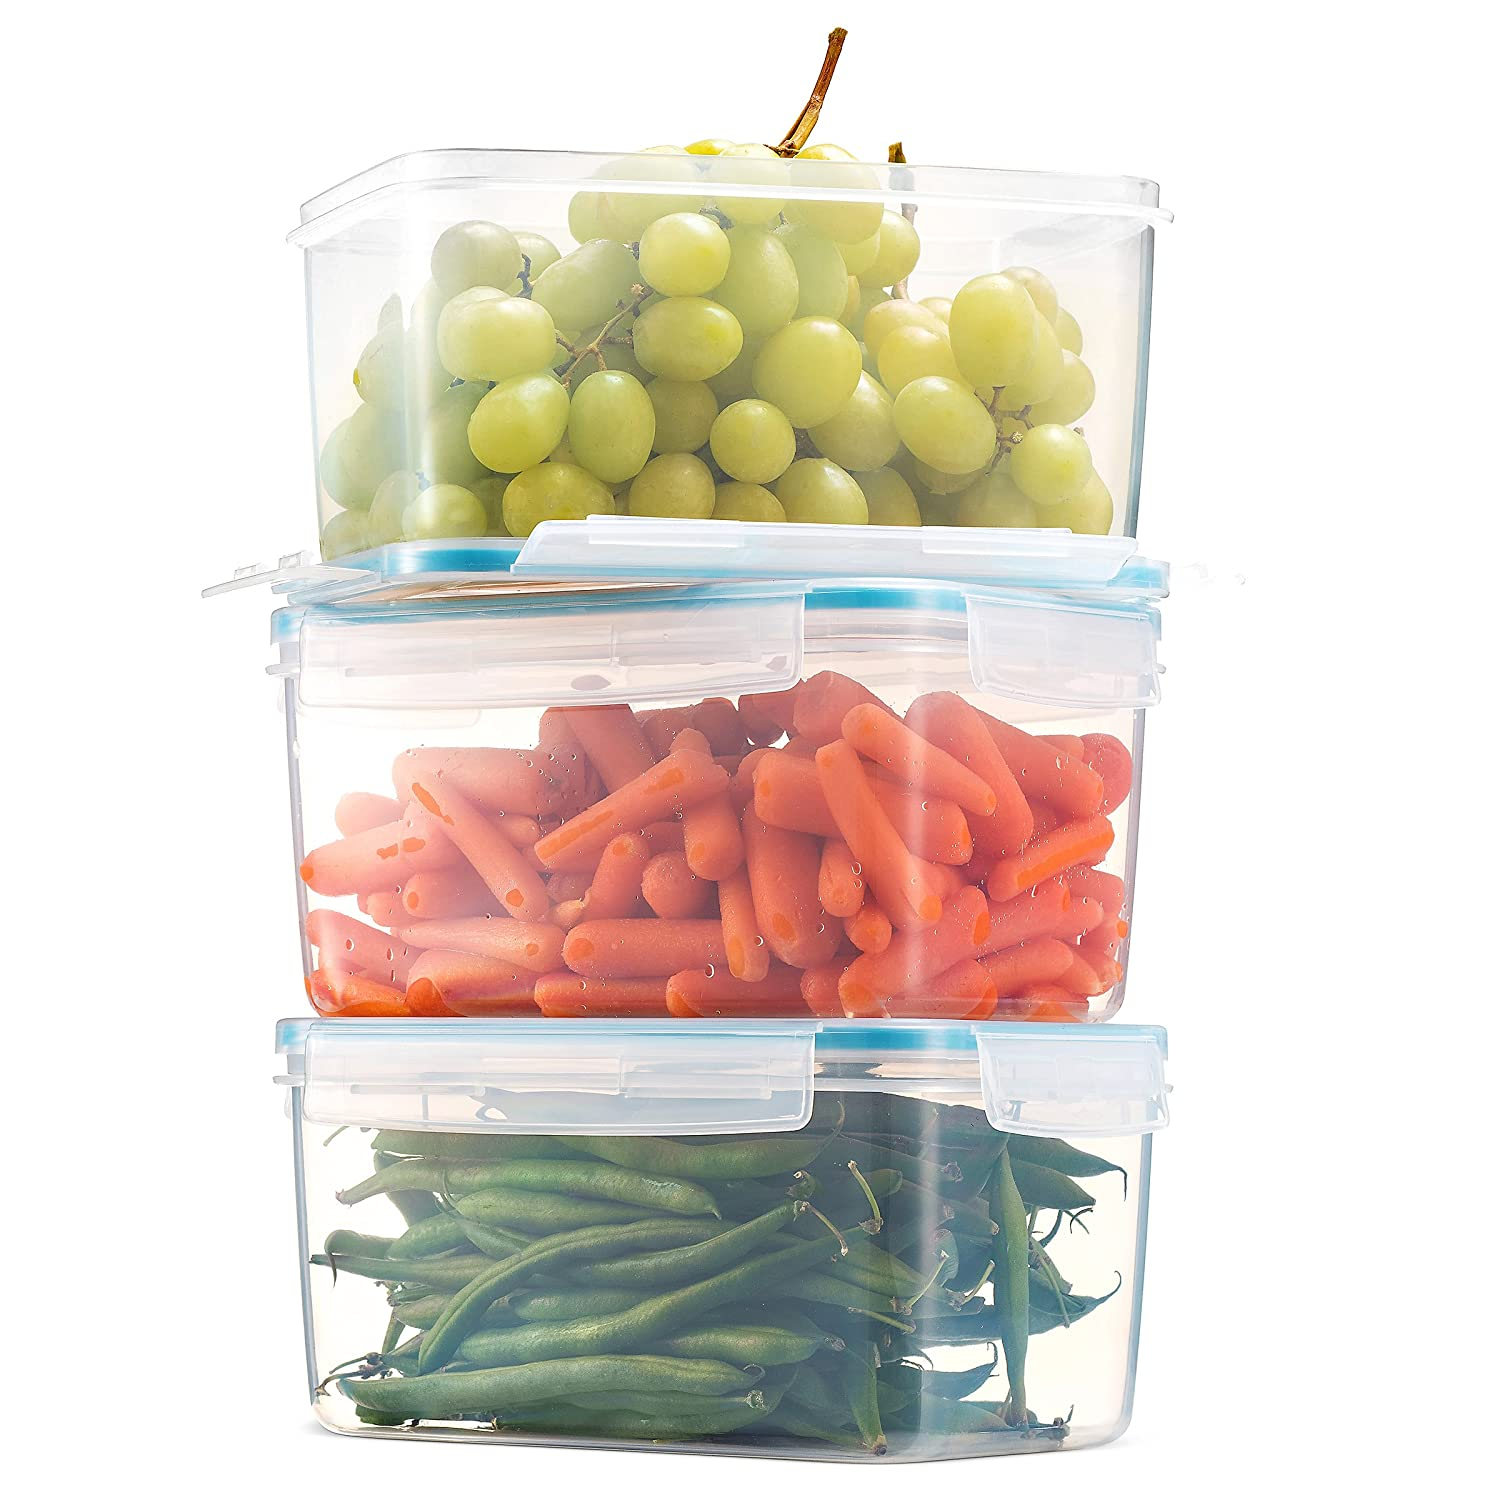 Komax Biokips Large Food Storage Container 81oz. (set of 3) - Airtight, Leakproof With Locking Lids - BPA Free Plastic - Microwave, Freezer and Dishwasher Safe - Great For Fruit & Vegetables